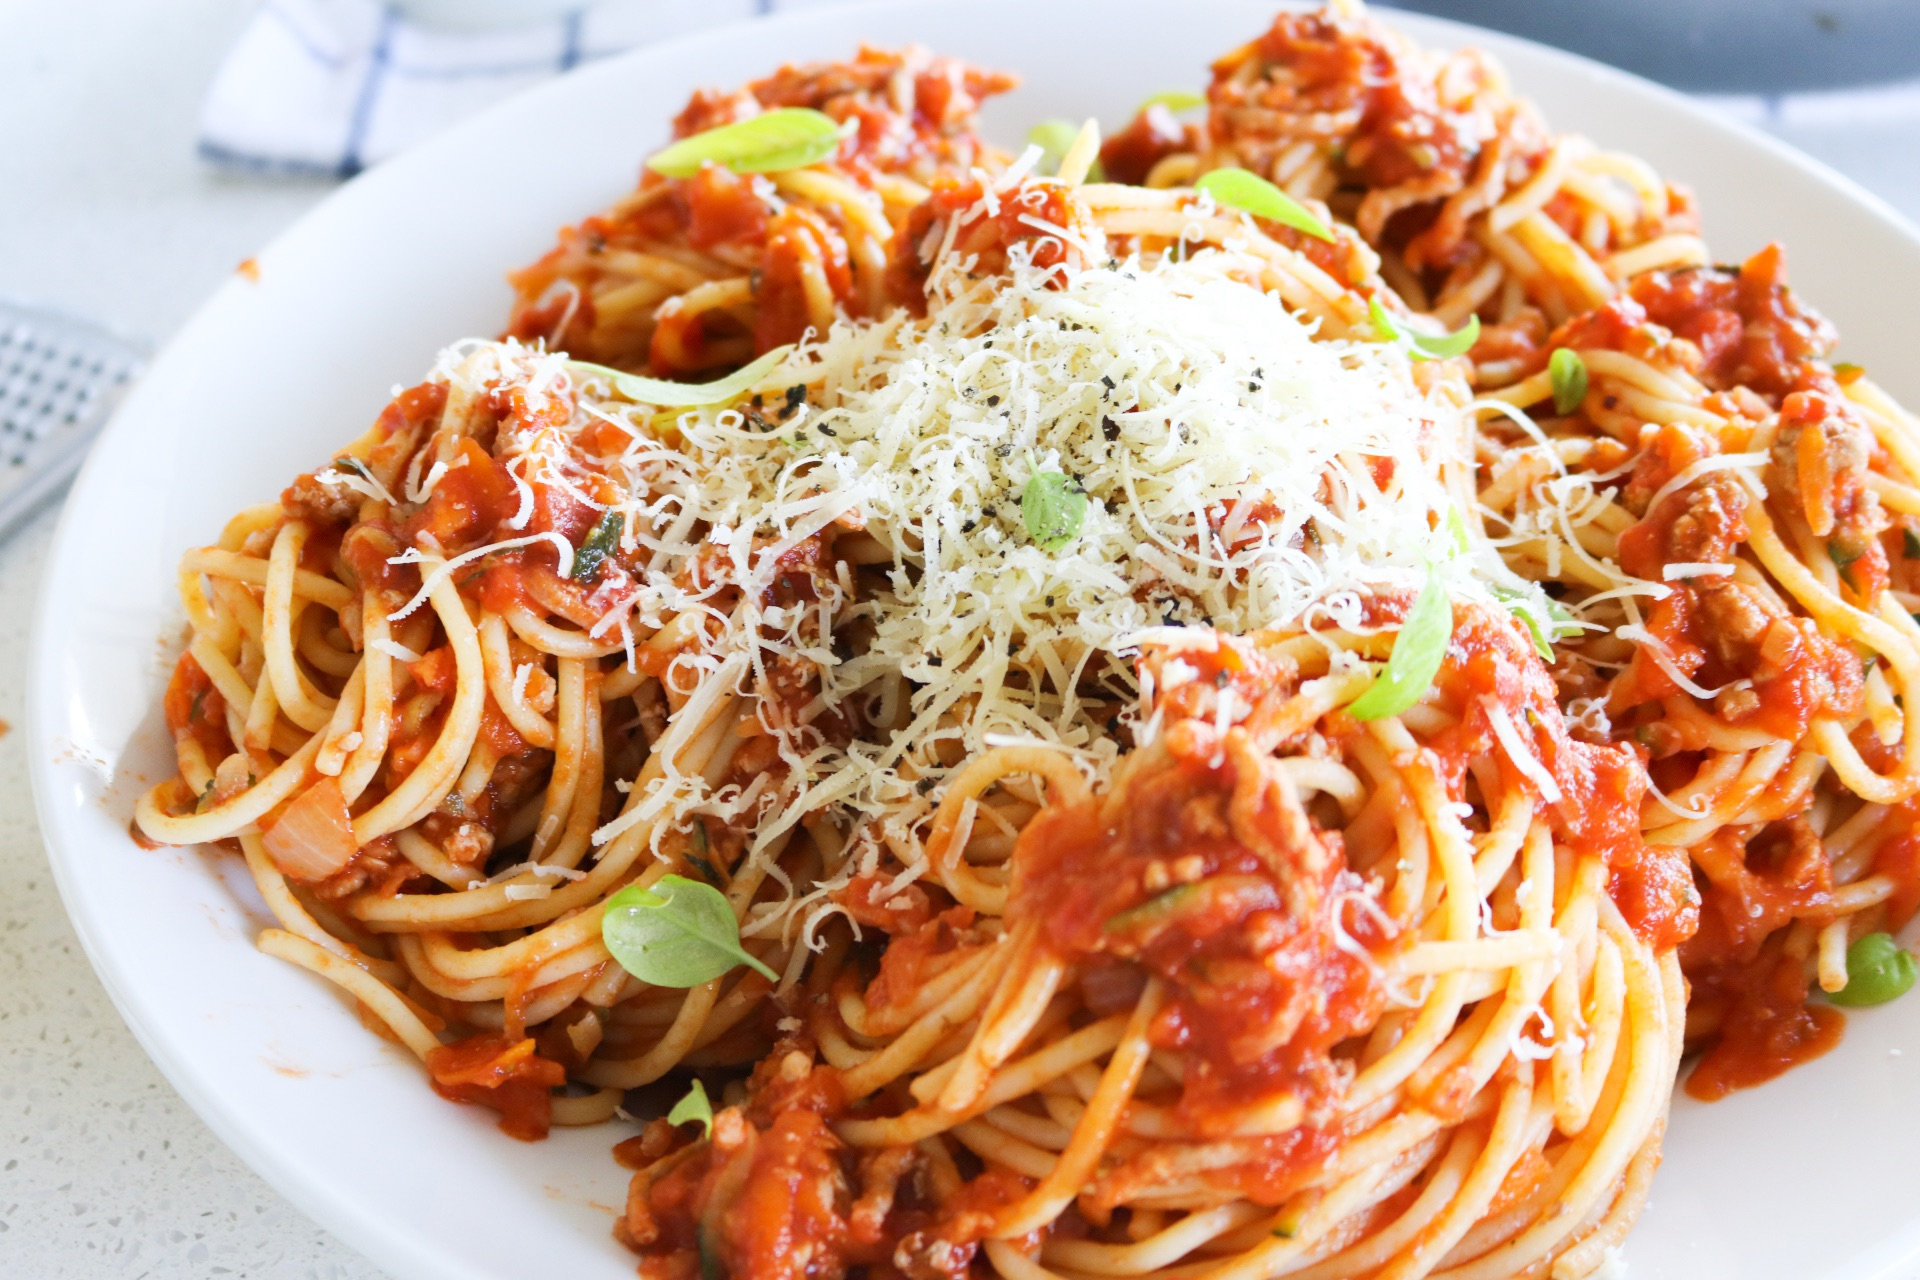 spaghetti bolognese - my lovely little lunch box